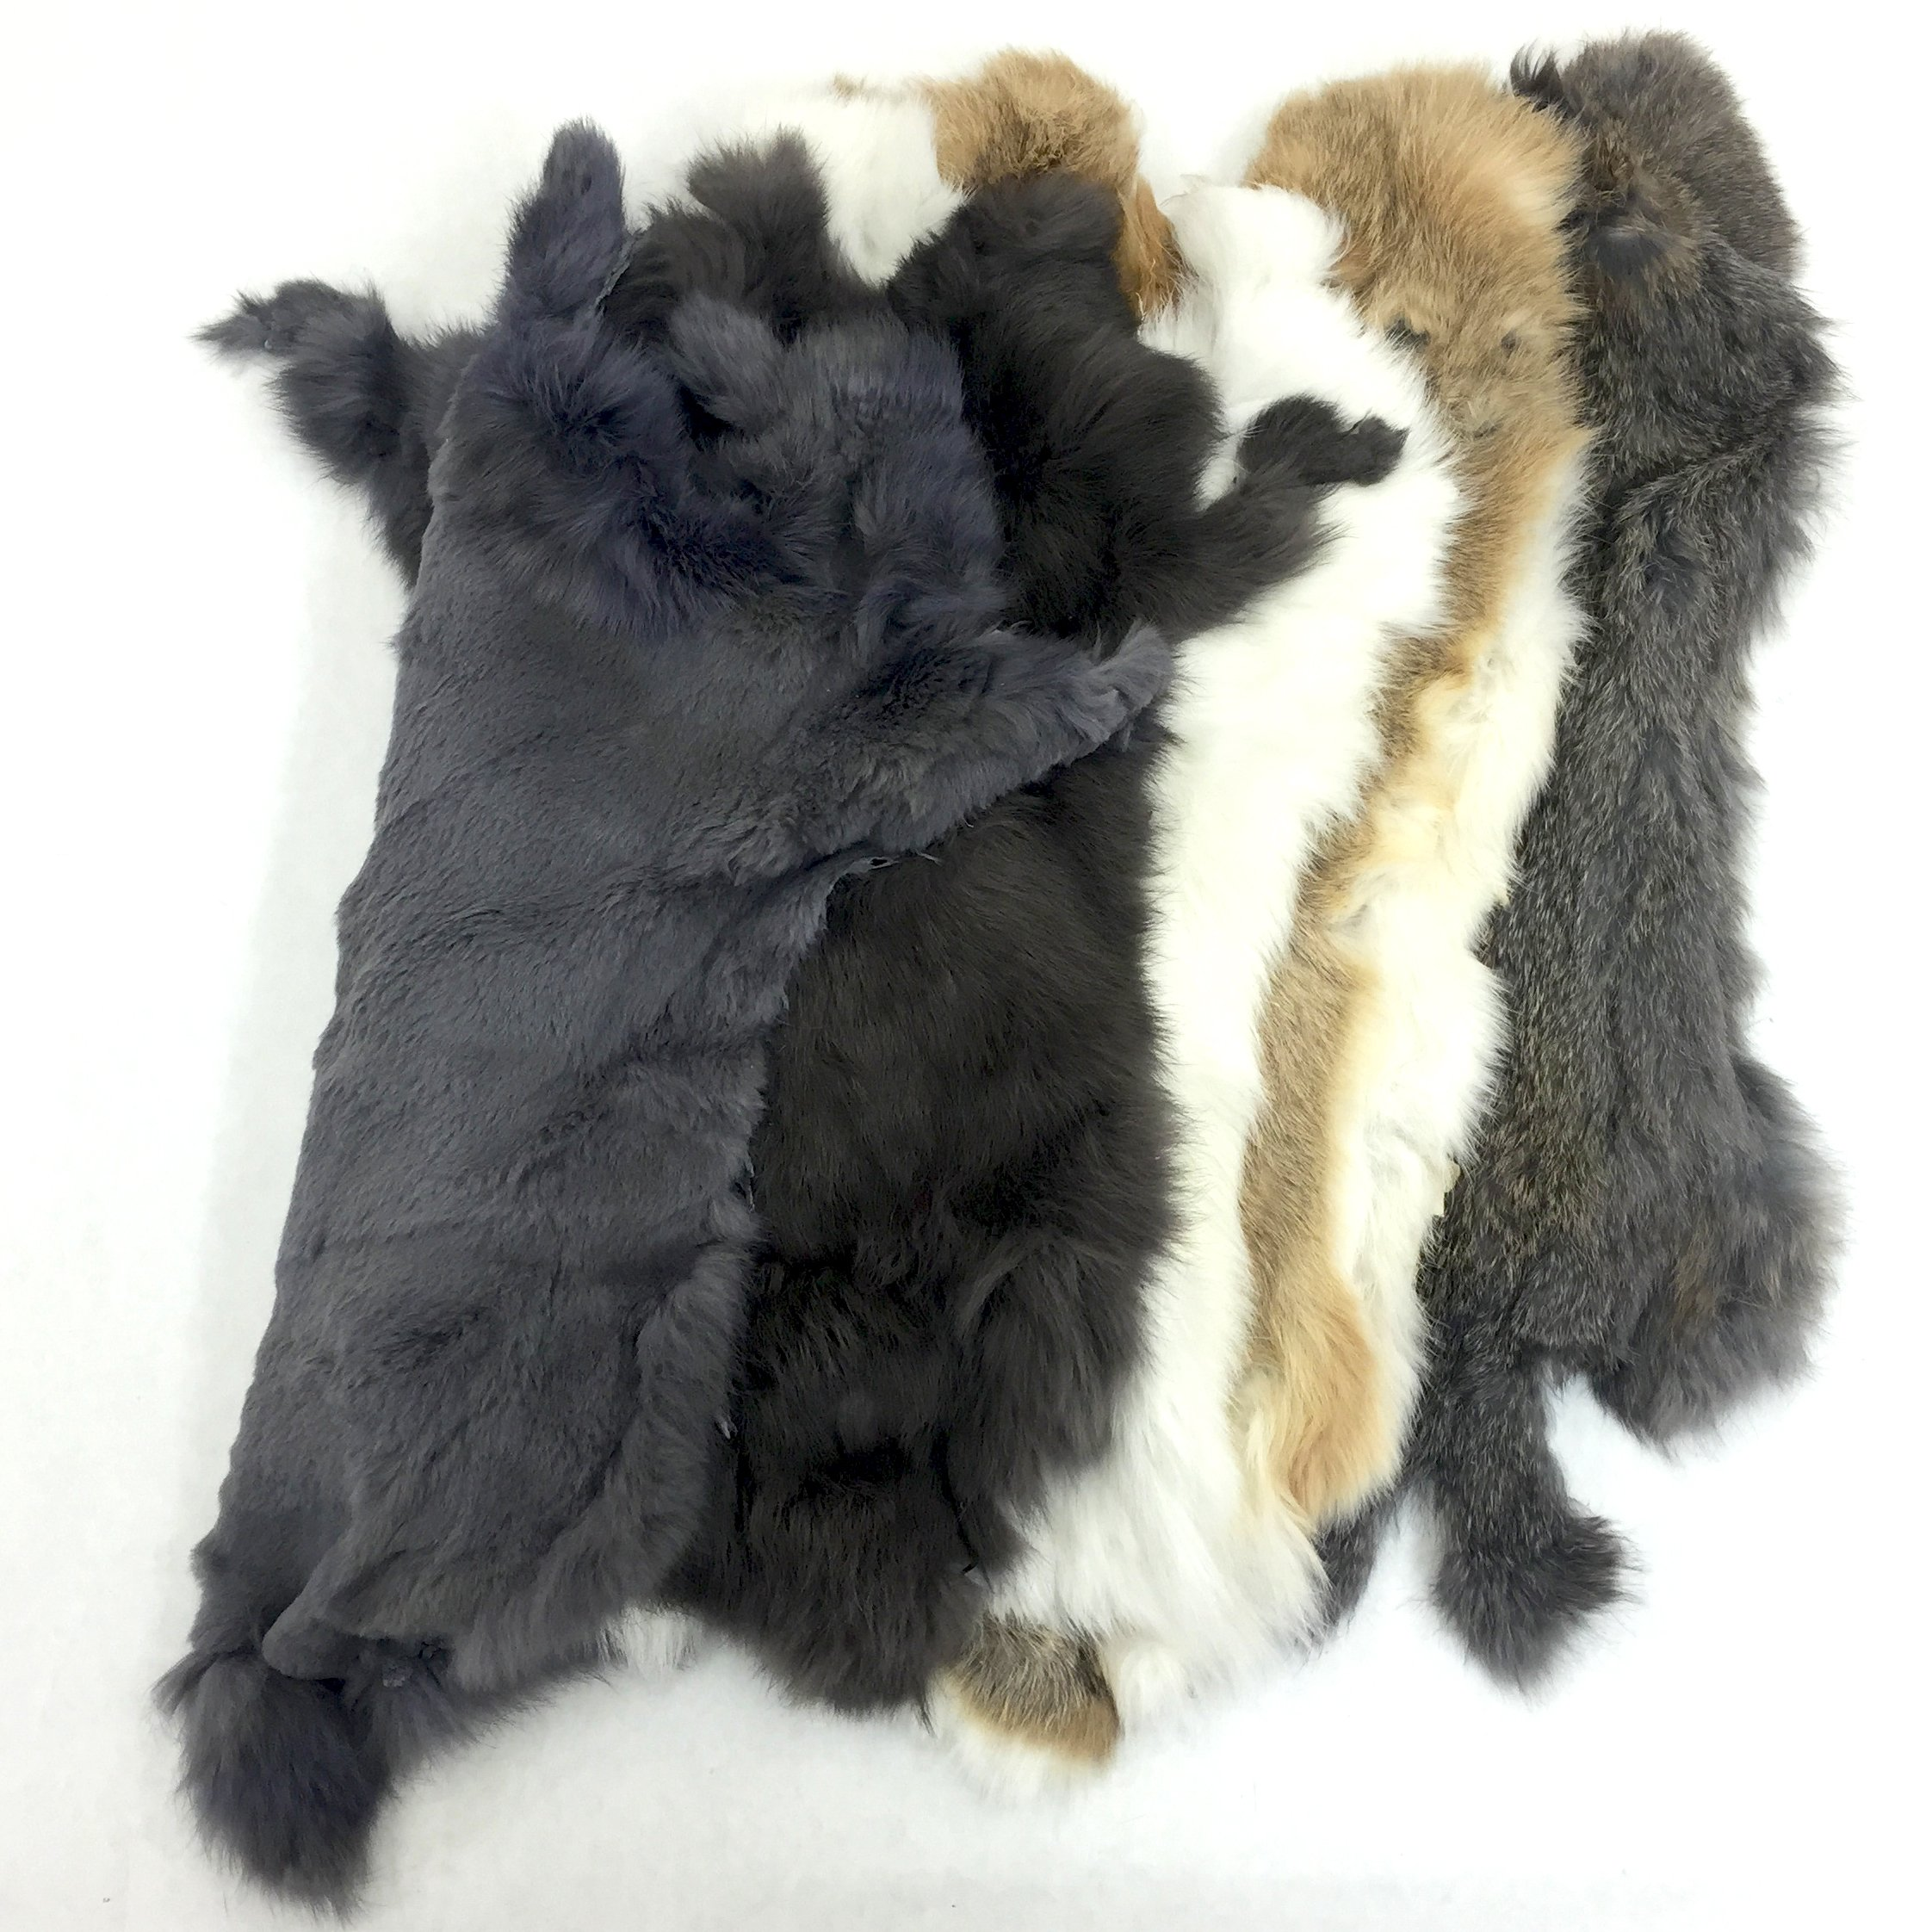 Assorted Bulk Craft Grade Rabbit Pelts (25 Pack) by Cinema Leather